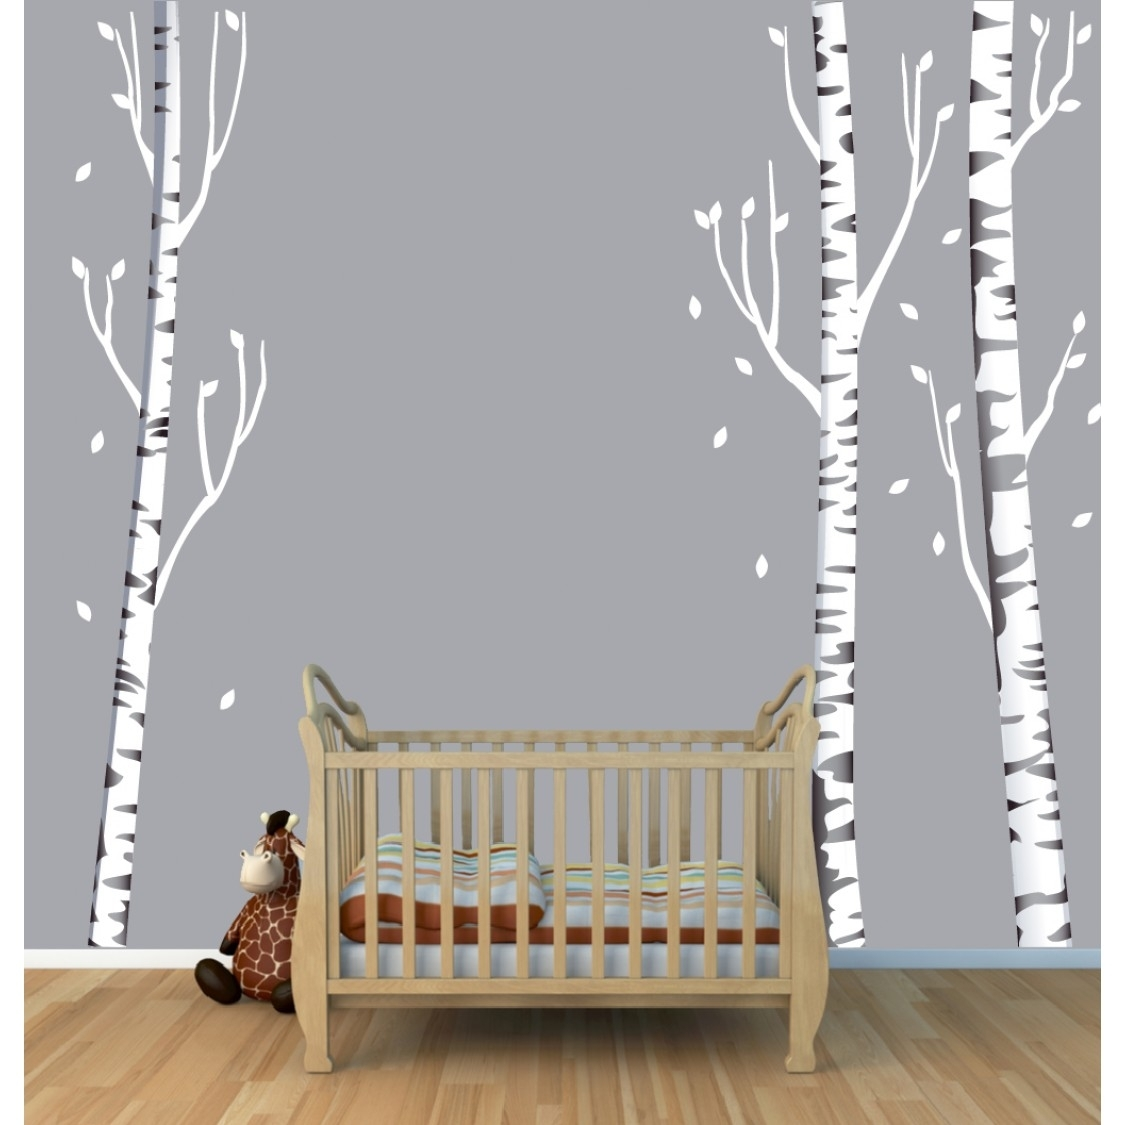 Tree Wall Art With Birch Tree Wall Decals For Kids Rooms Inside Most Popular Birch Tree Wall Art (View 20 of 20)